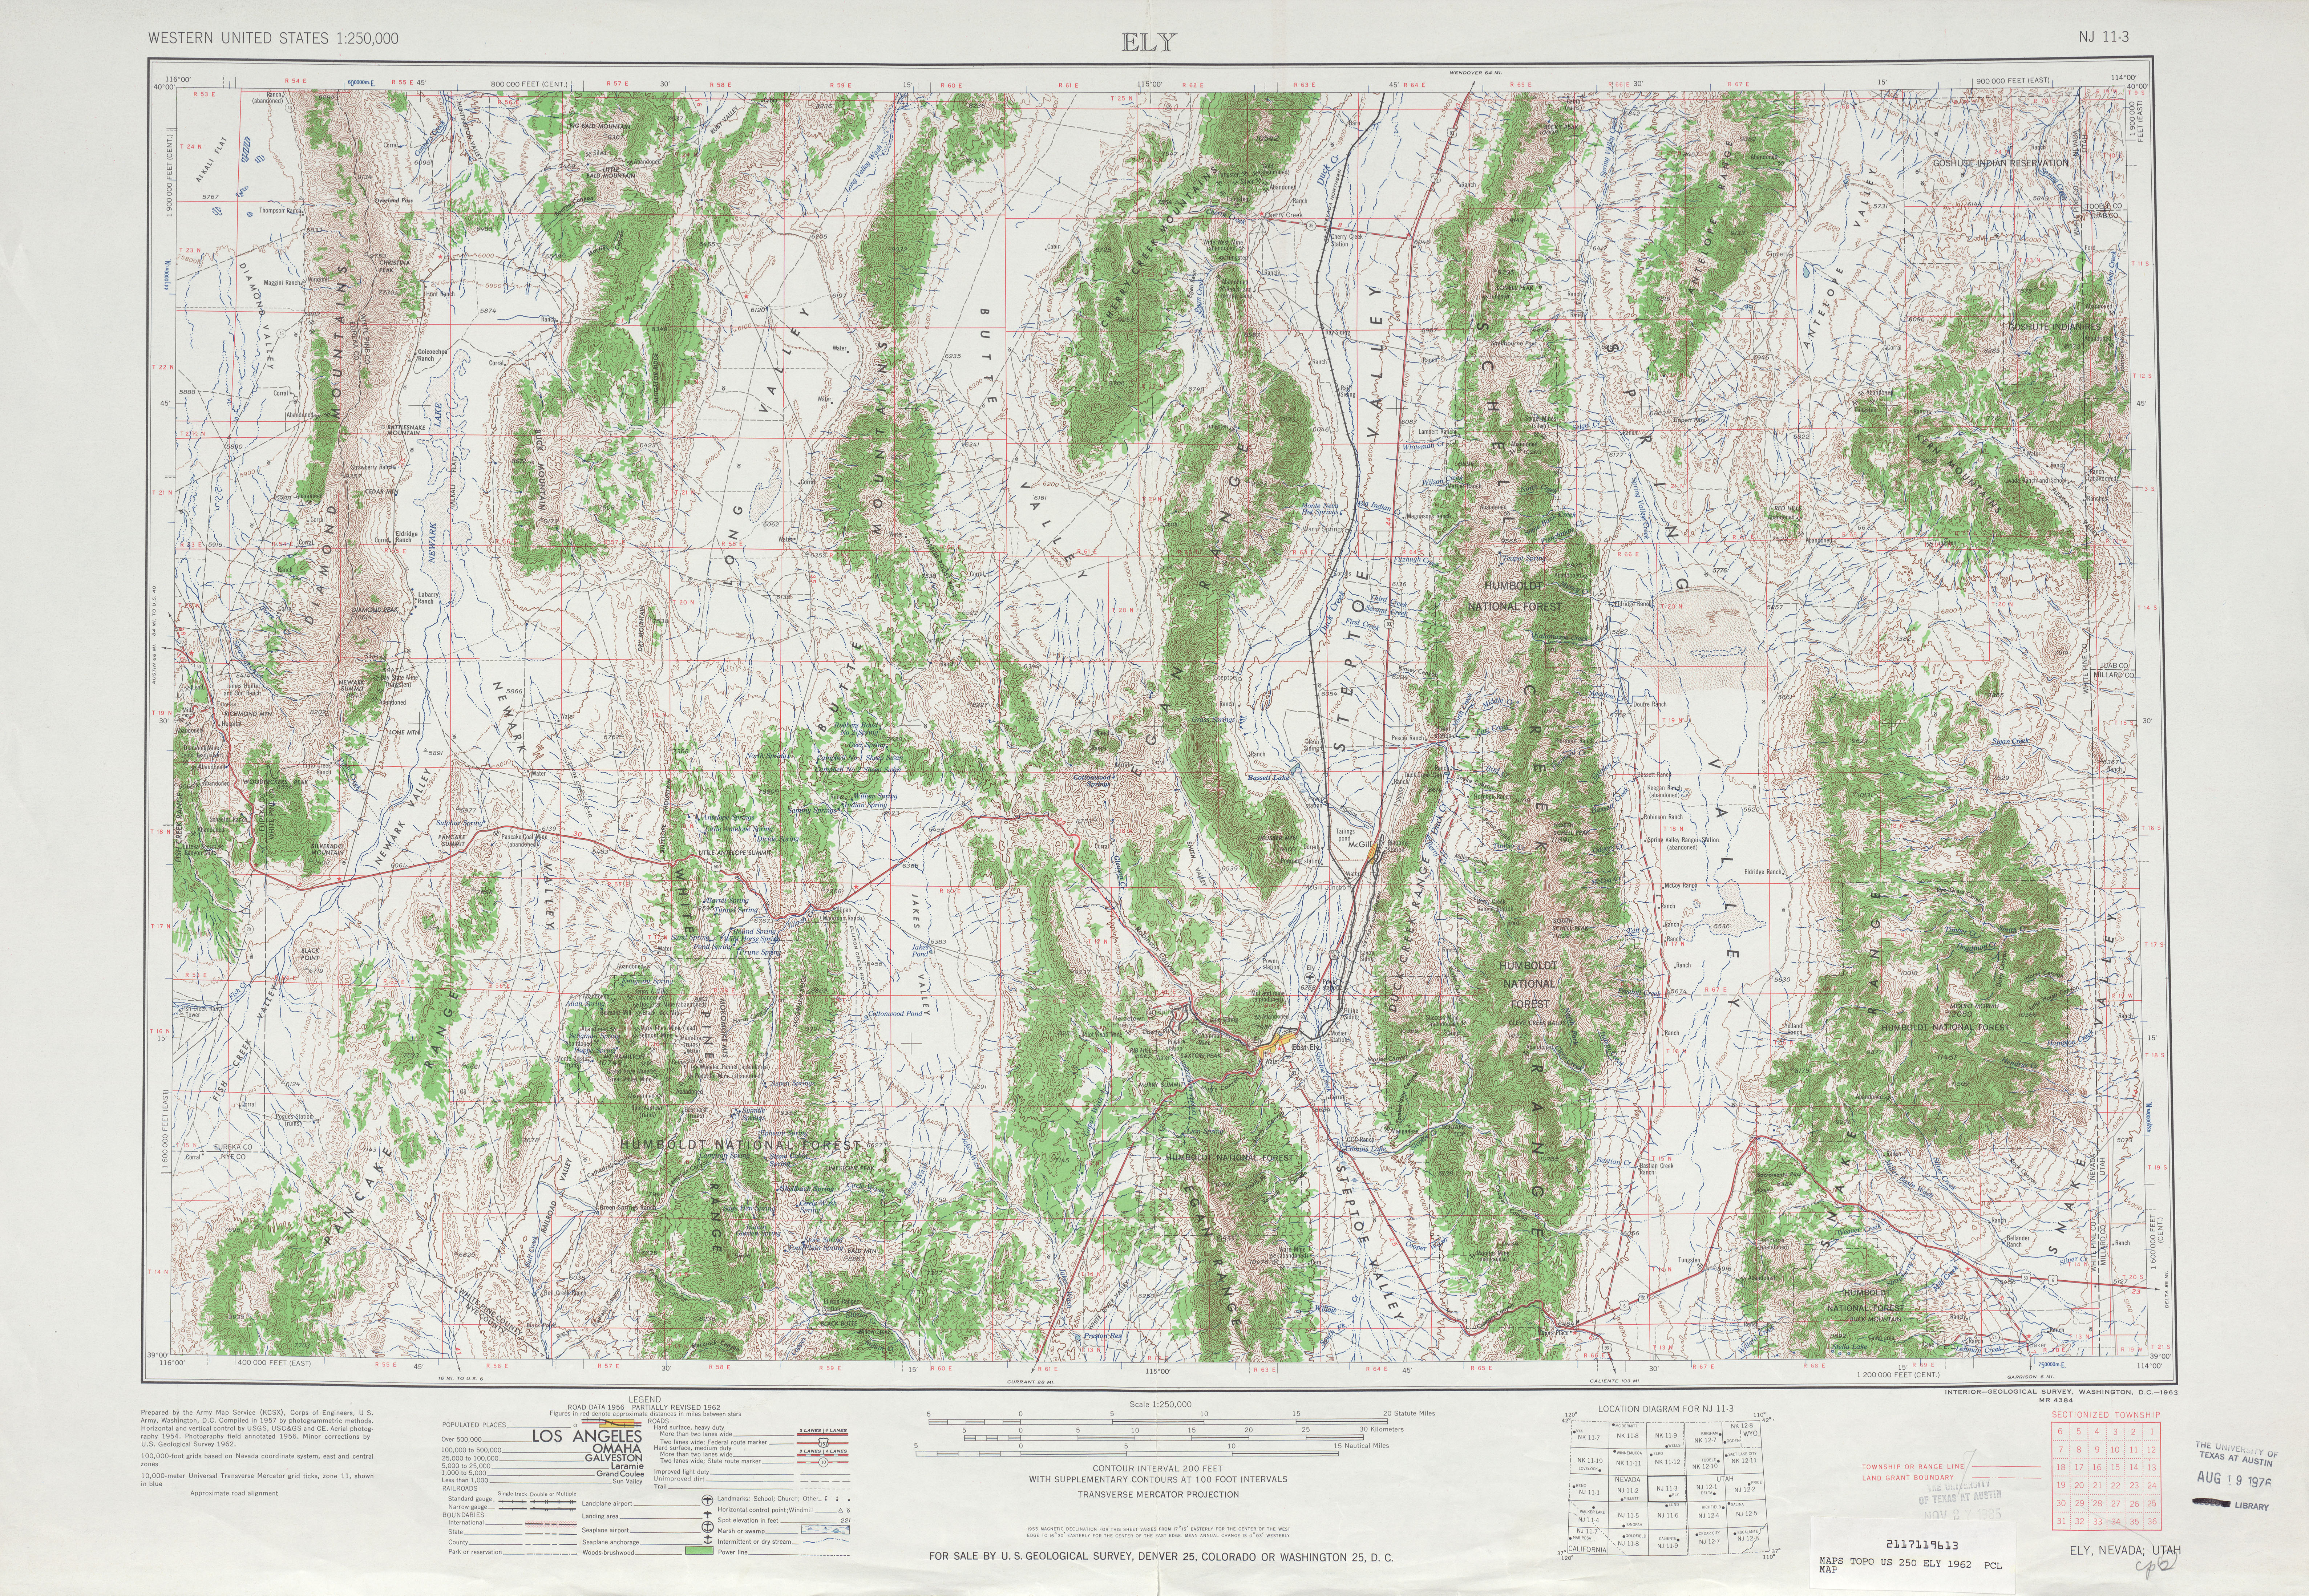 Ely Topographic Map Sheet, United States 1962